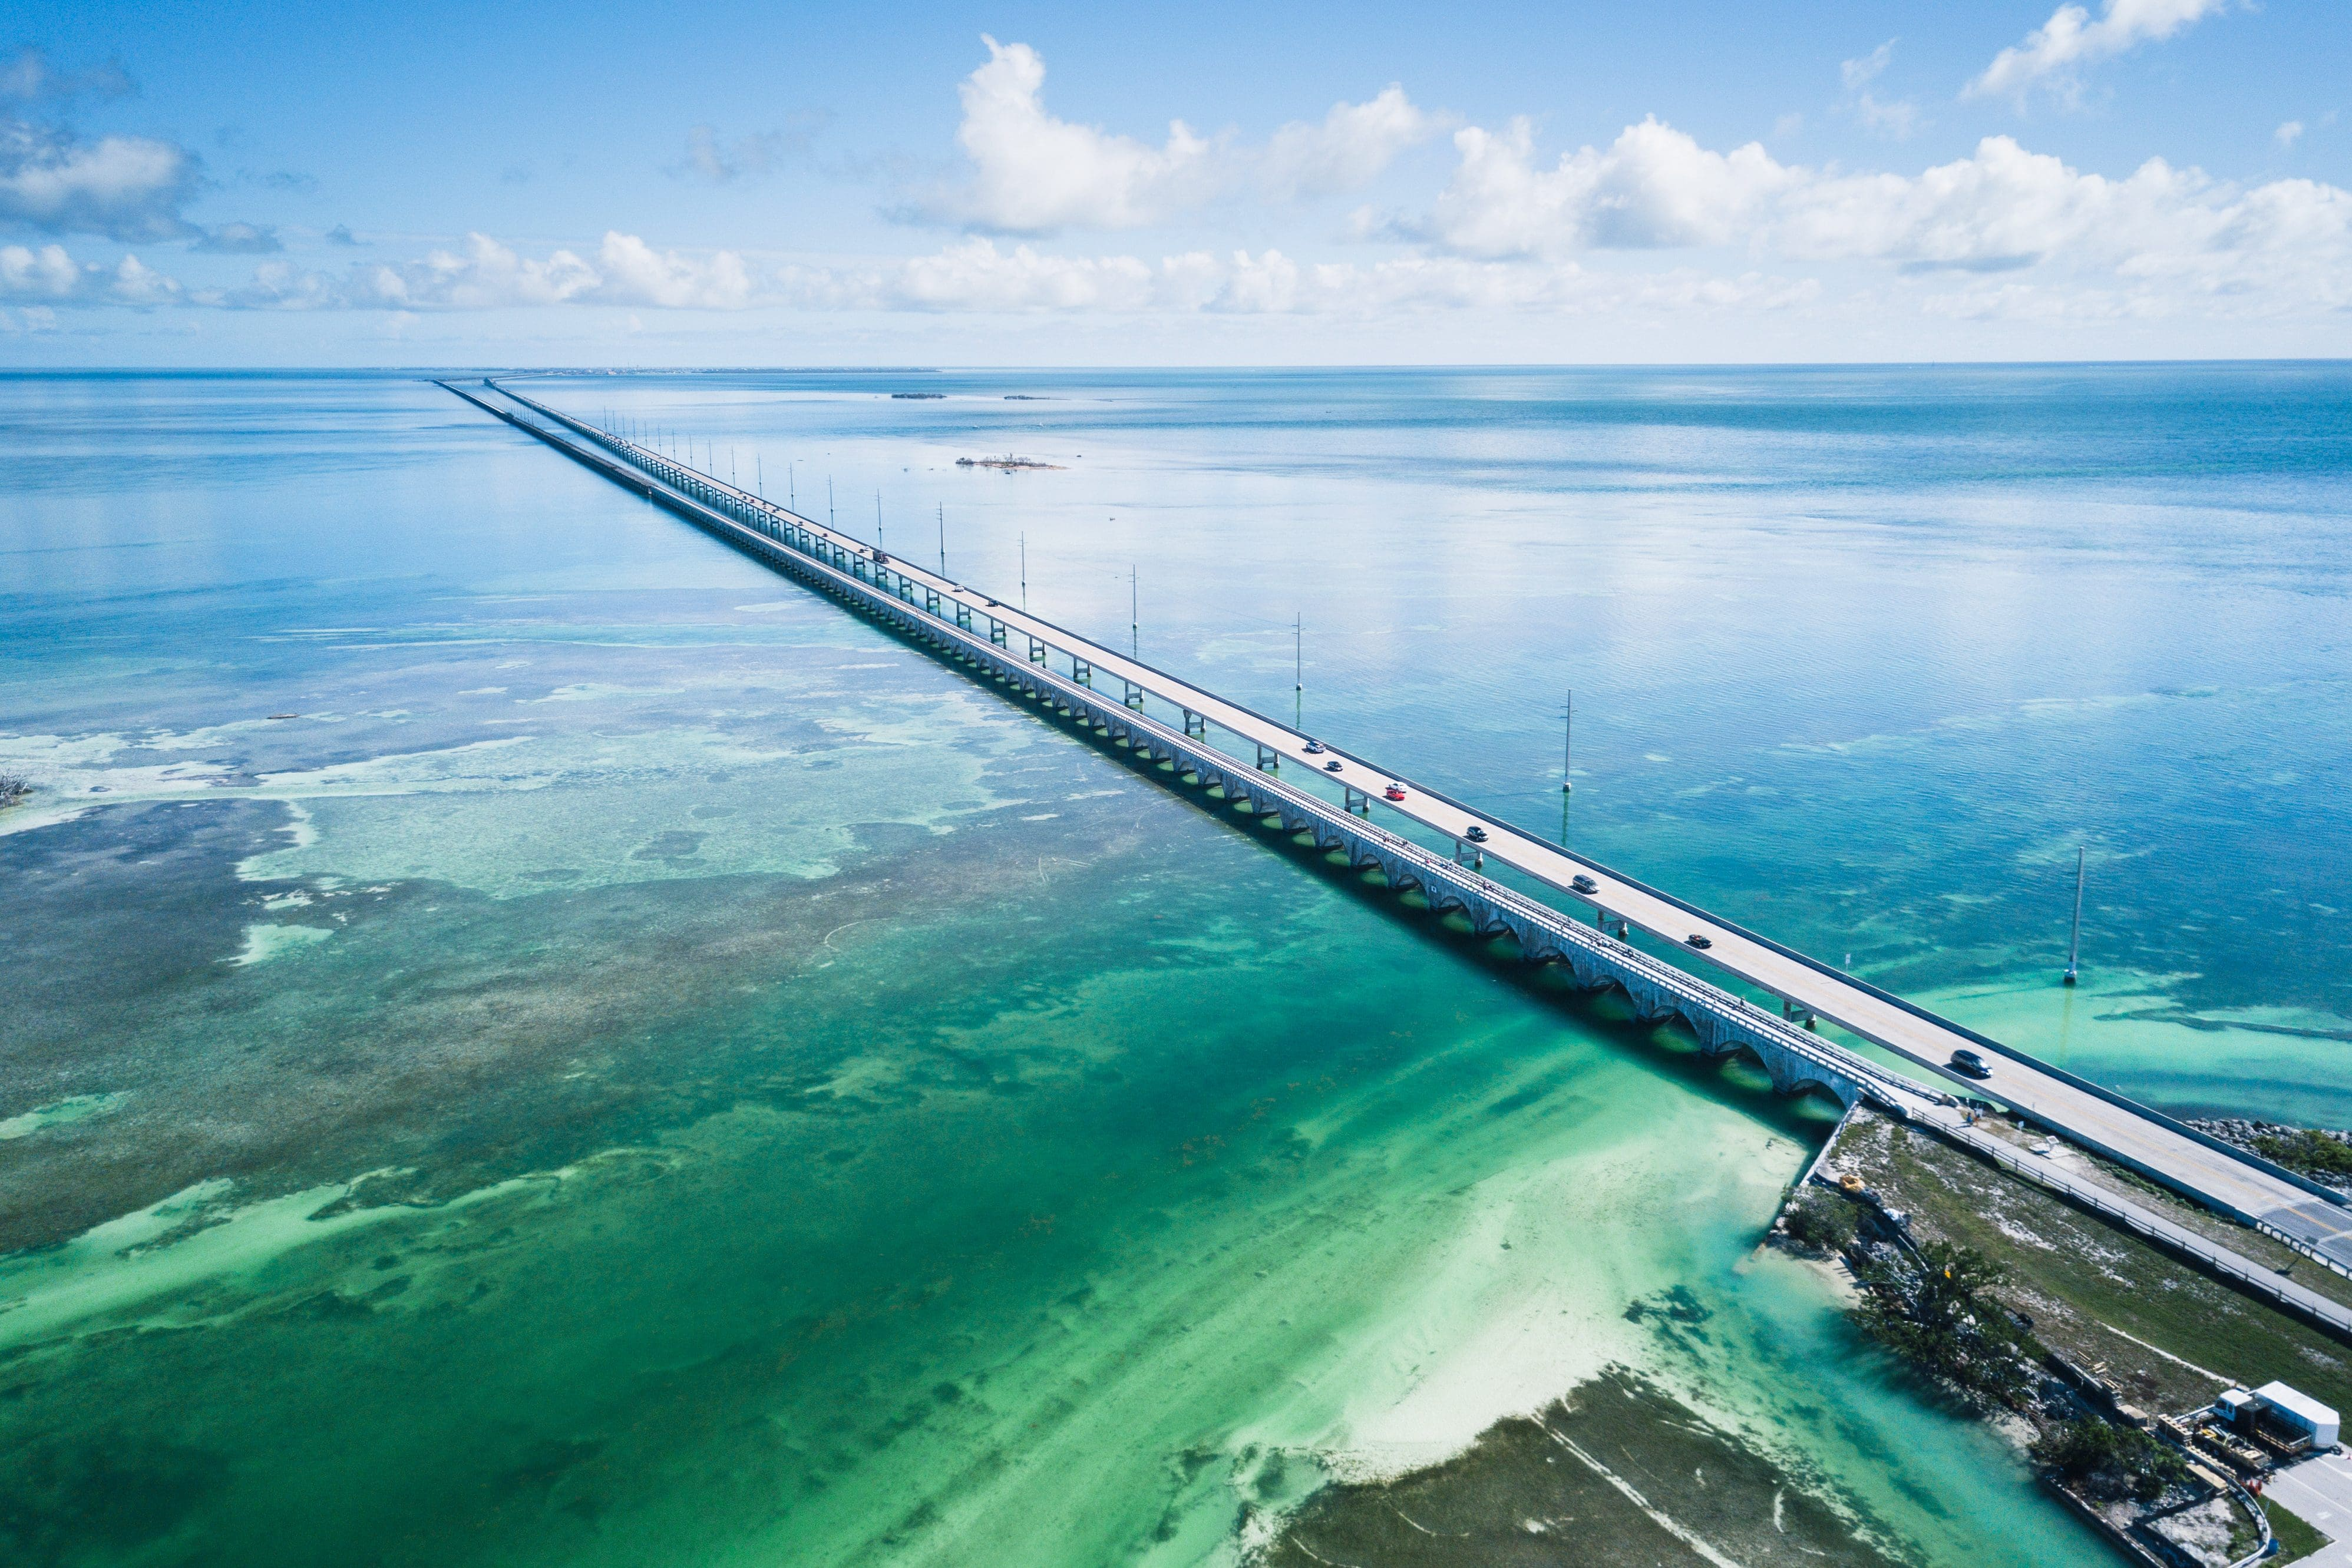 The Overseas Highway from Miami to Key West, Florida